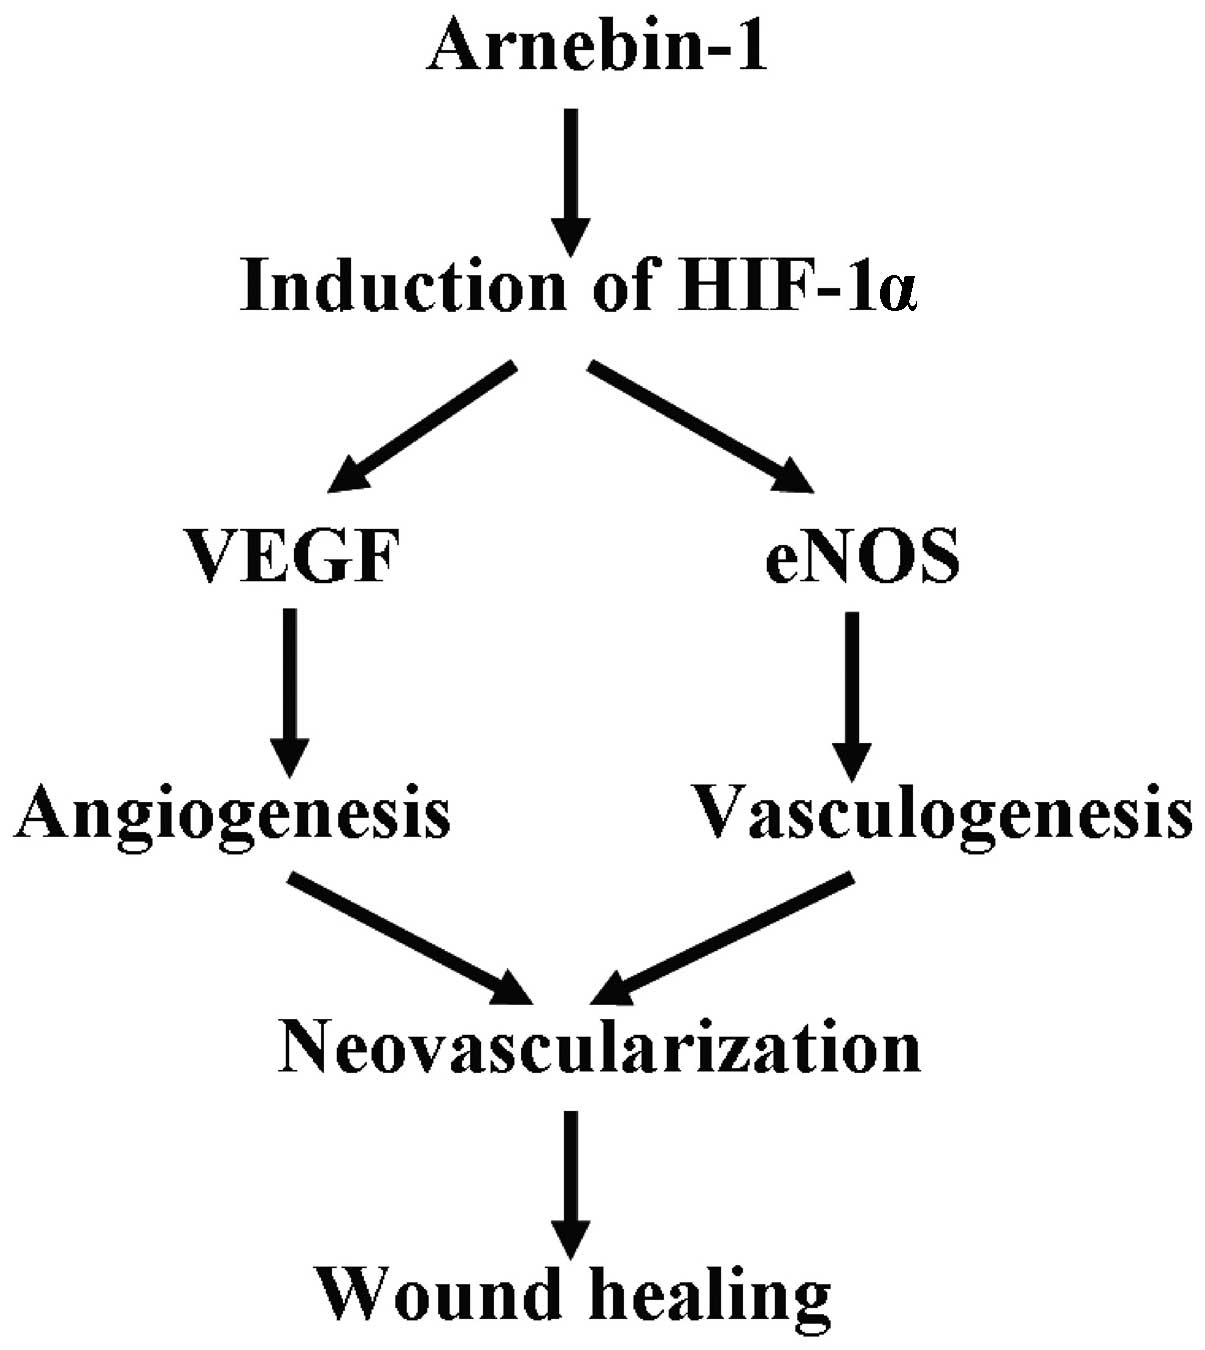 hight resolution of schematic diagram of the mechanisms through which arnebin 1 promotes vascularization and wound healing arnebin 1 treatment leads to the accumulation of